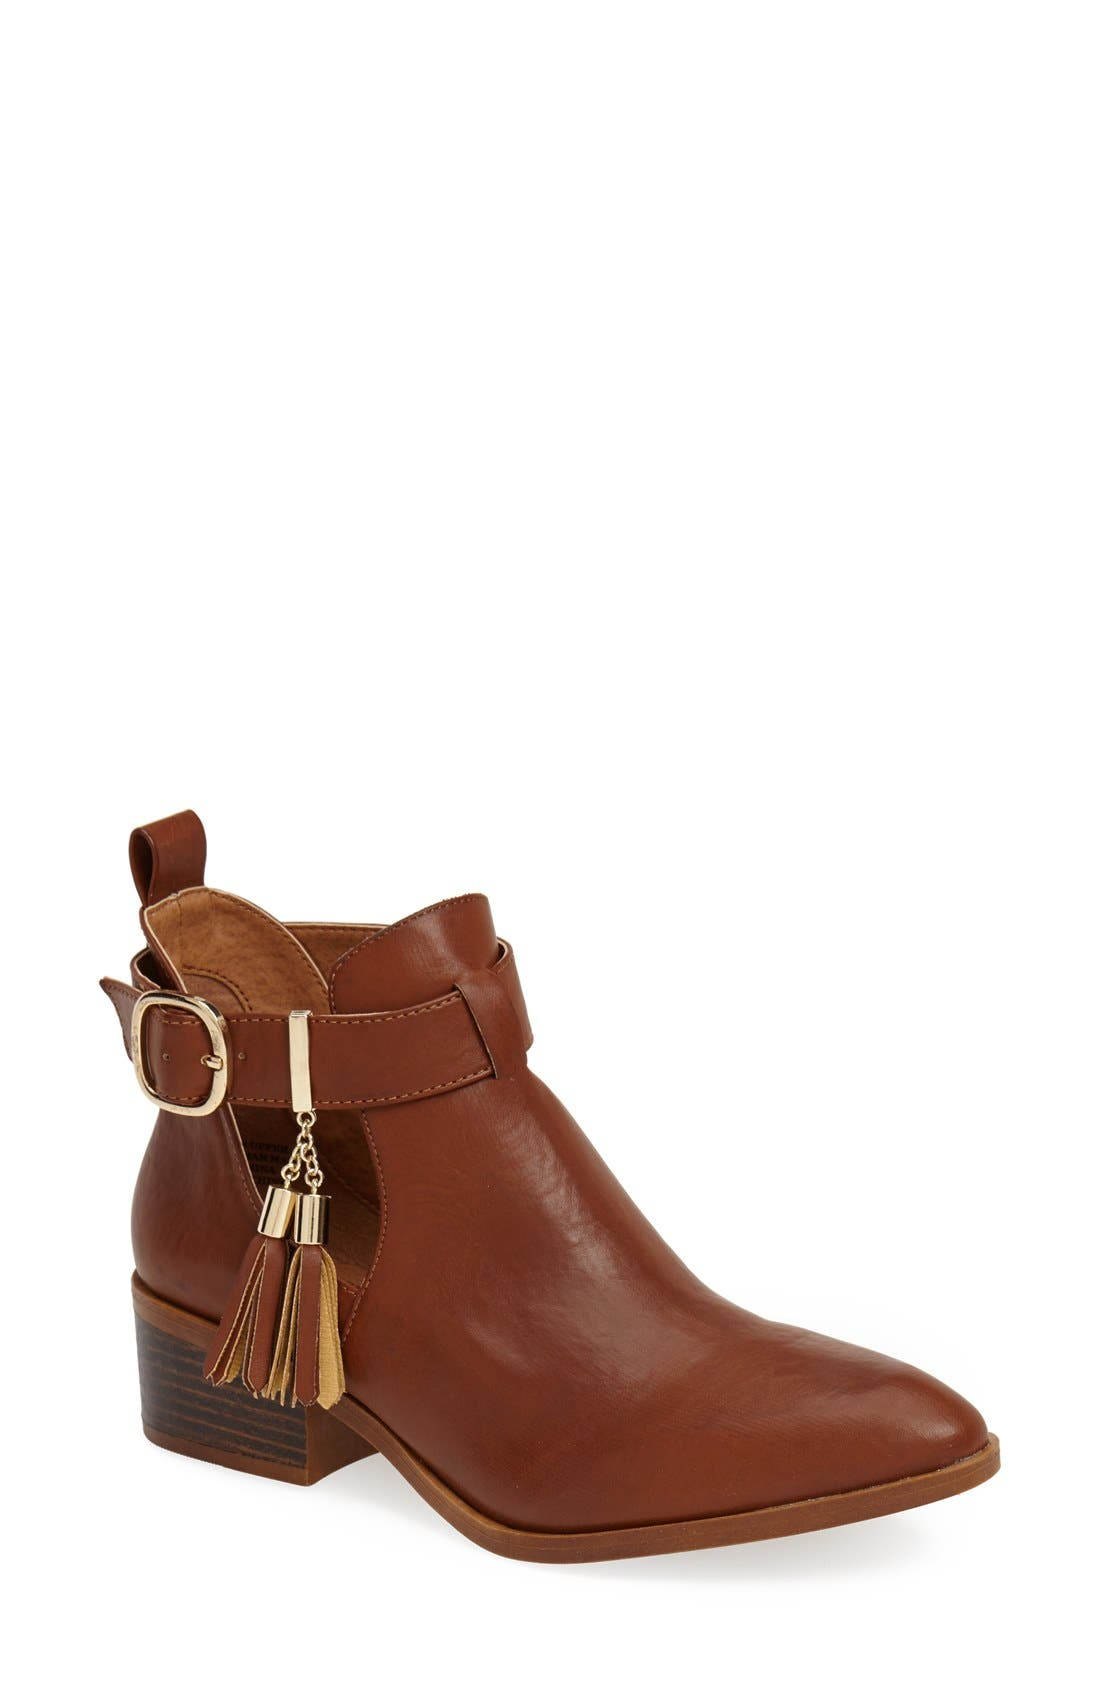 Alternate Image 1 Selected - BC Footwear 'Dress Up' Ankle Bootie (Women)